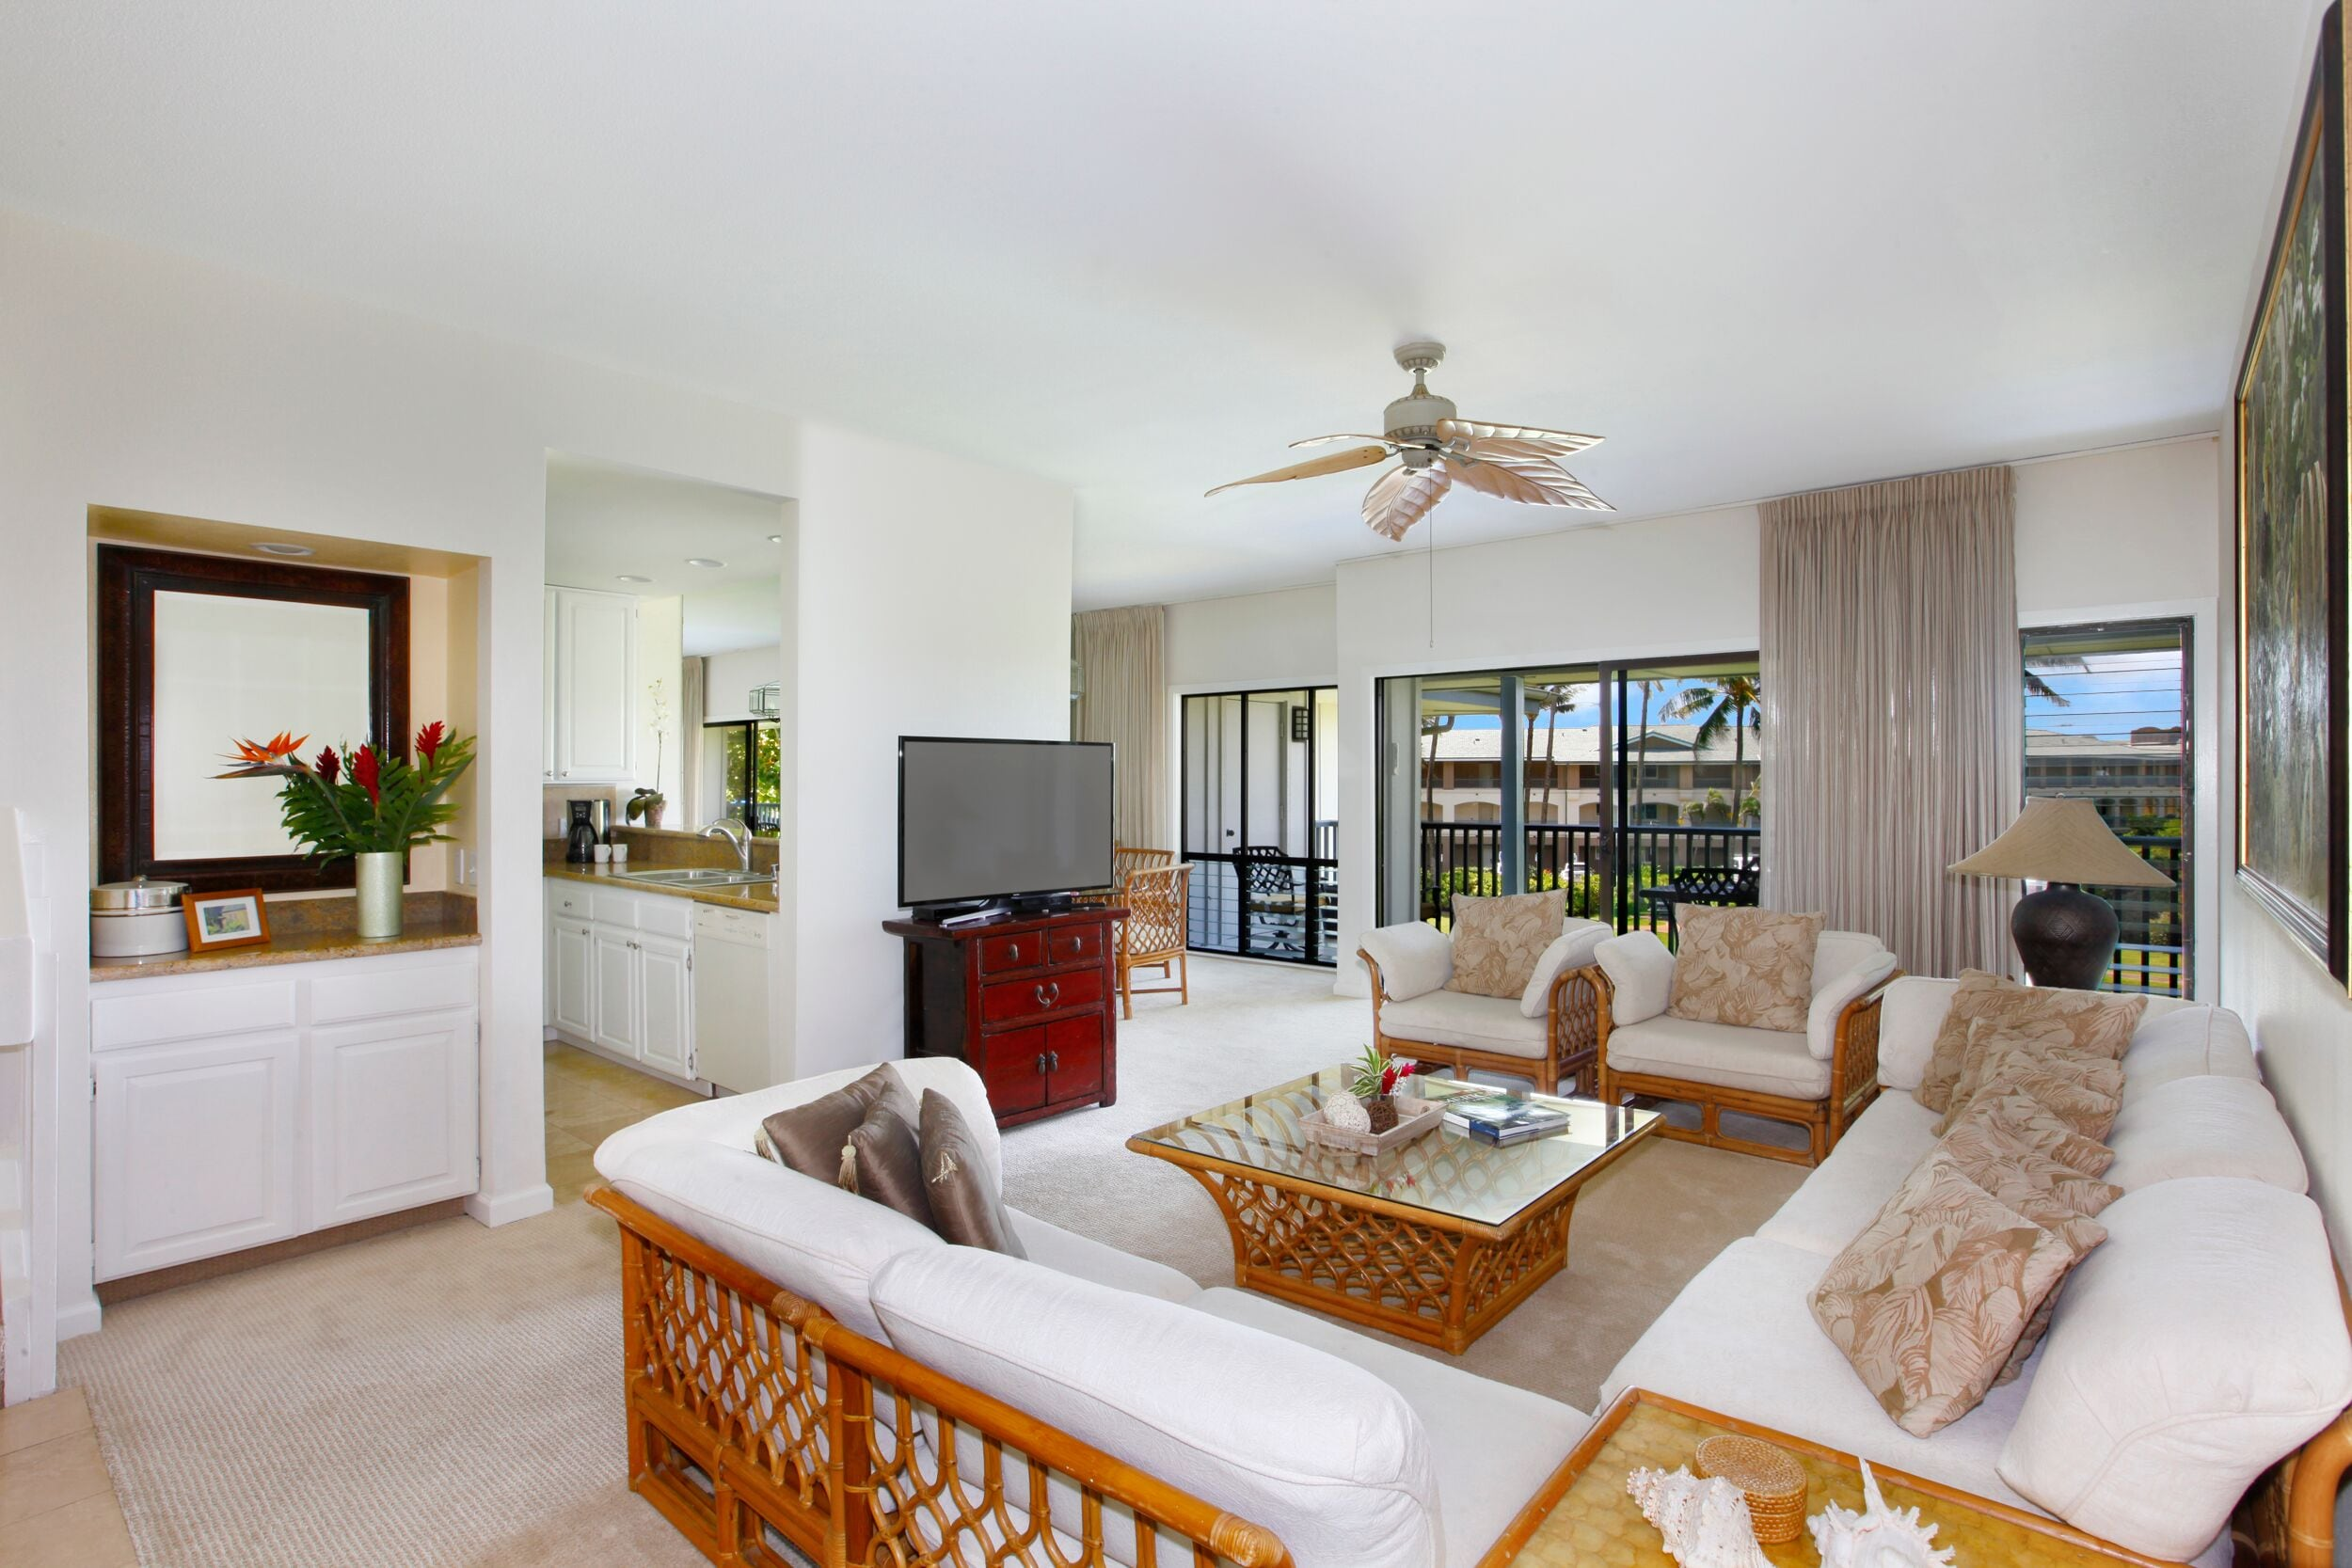 Property Image 1 - Large and Spacious Kauai Villa within a Short Walk to the Beach